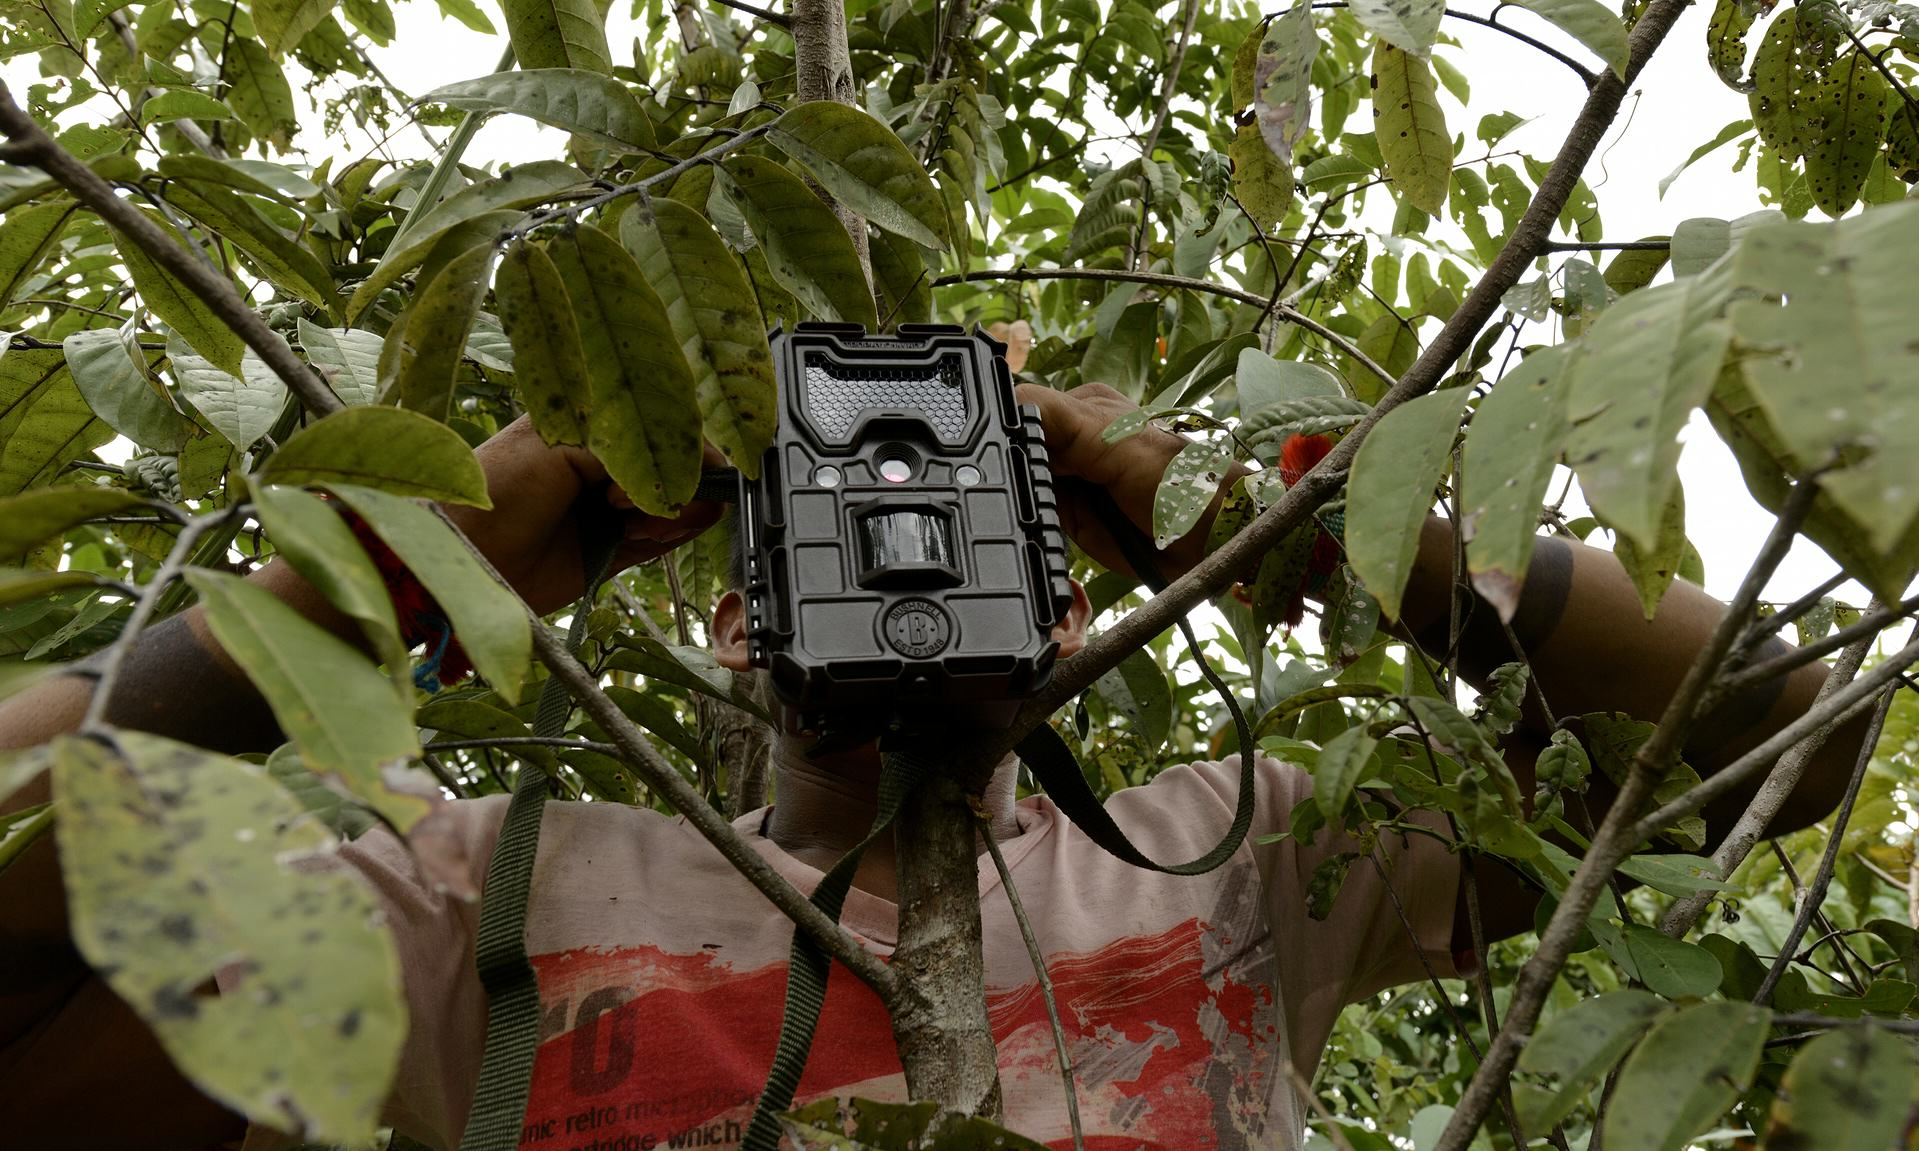 UNILAD A Ka'apor Indian sets up a trap camera in an area used by illegal loggers. Photograph Lunae ParrachoGreenpeace2 This Amazon Tribe Use Unusual Methods To Protect Their Land From Illegal Loggers